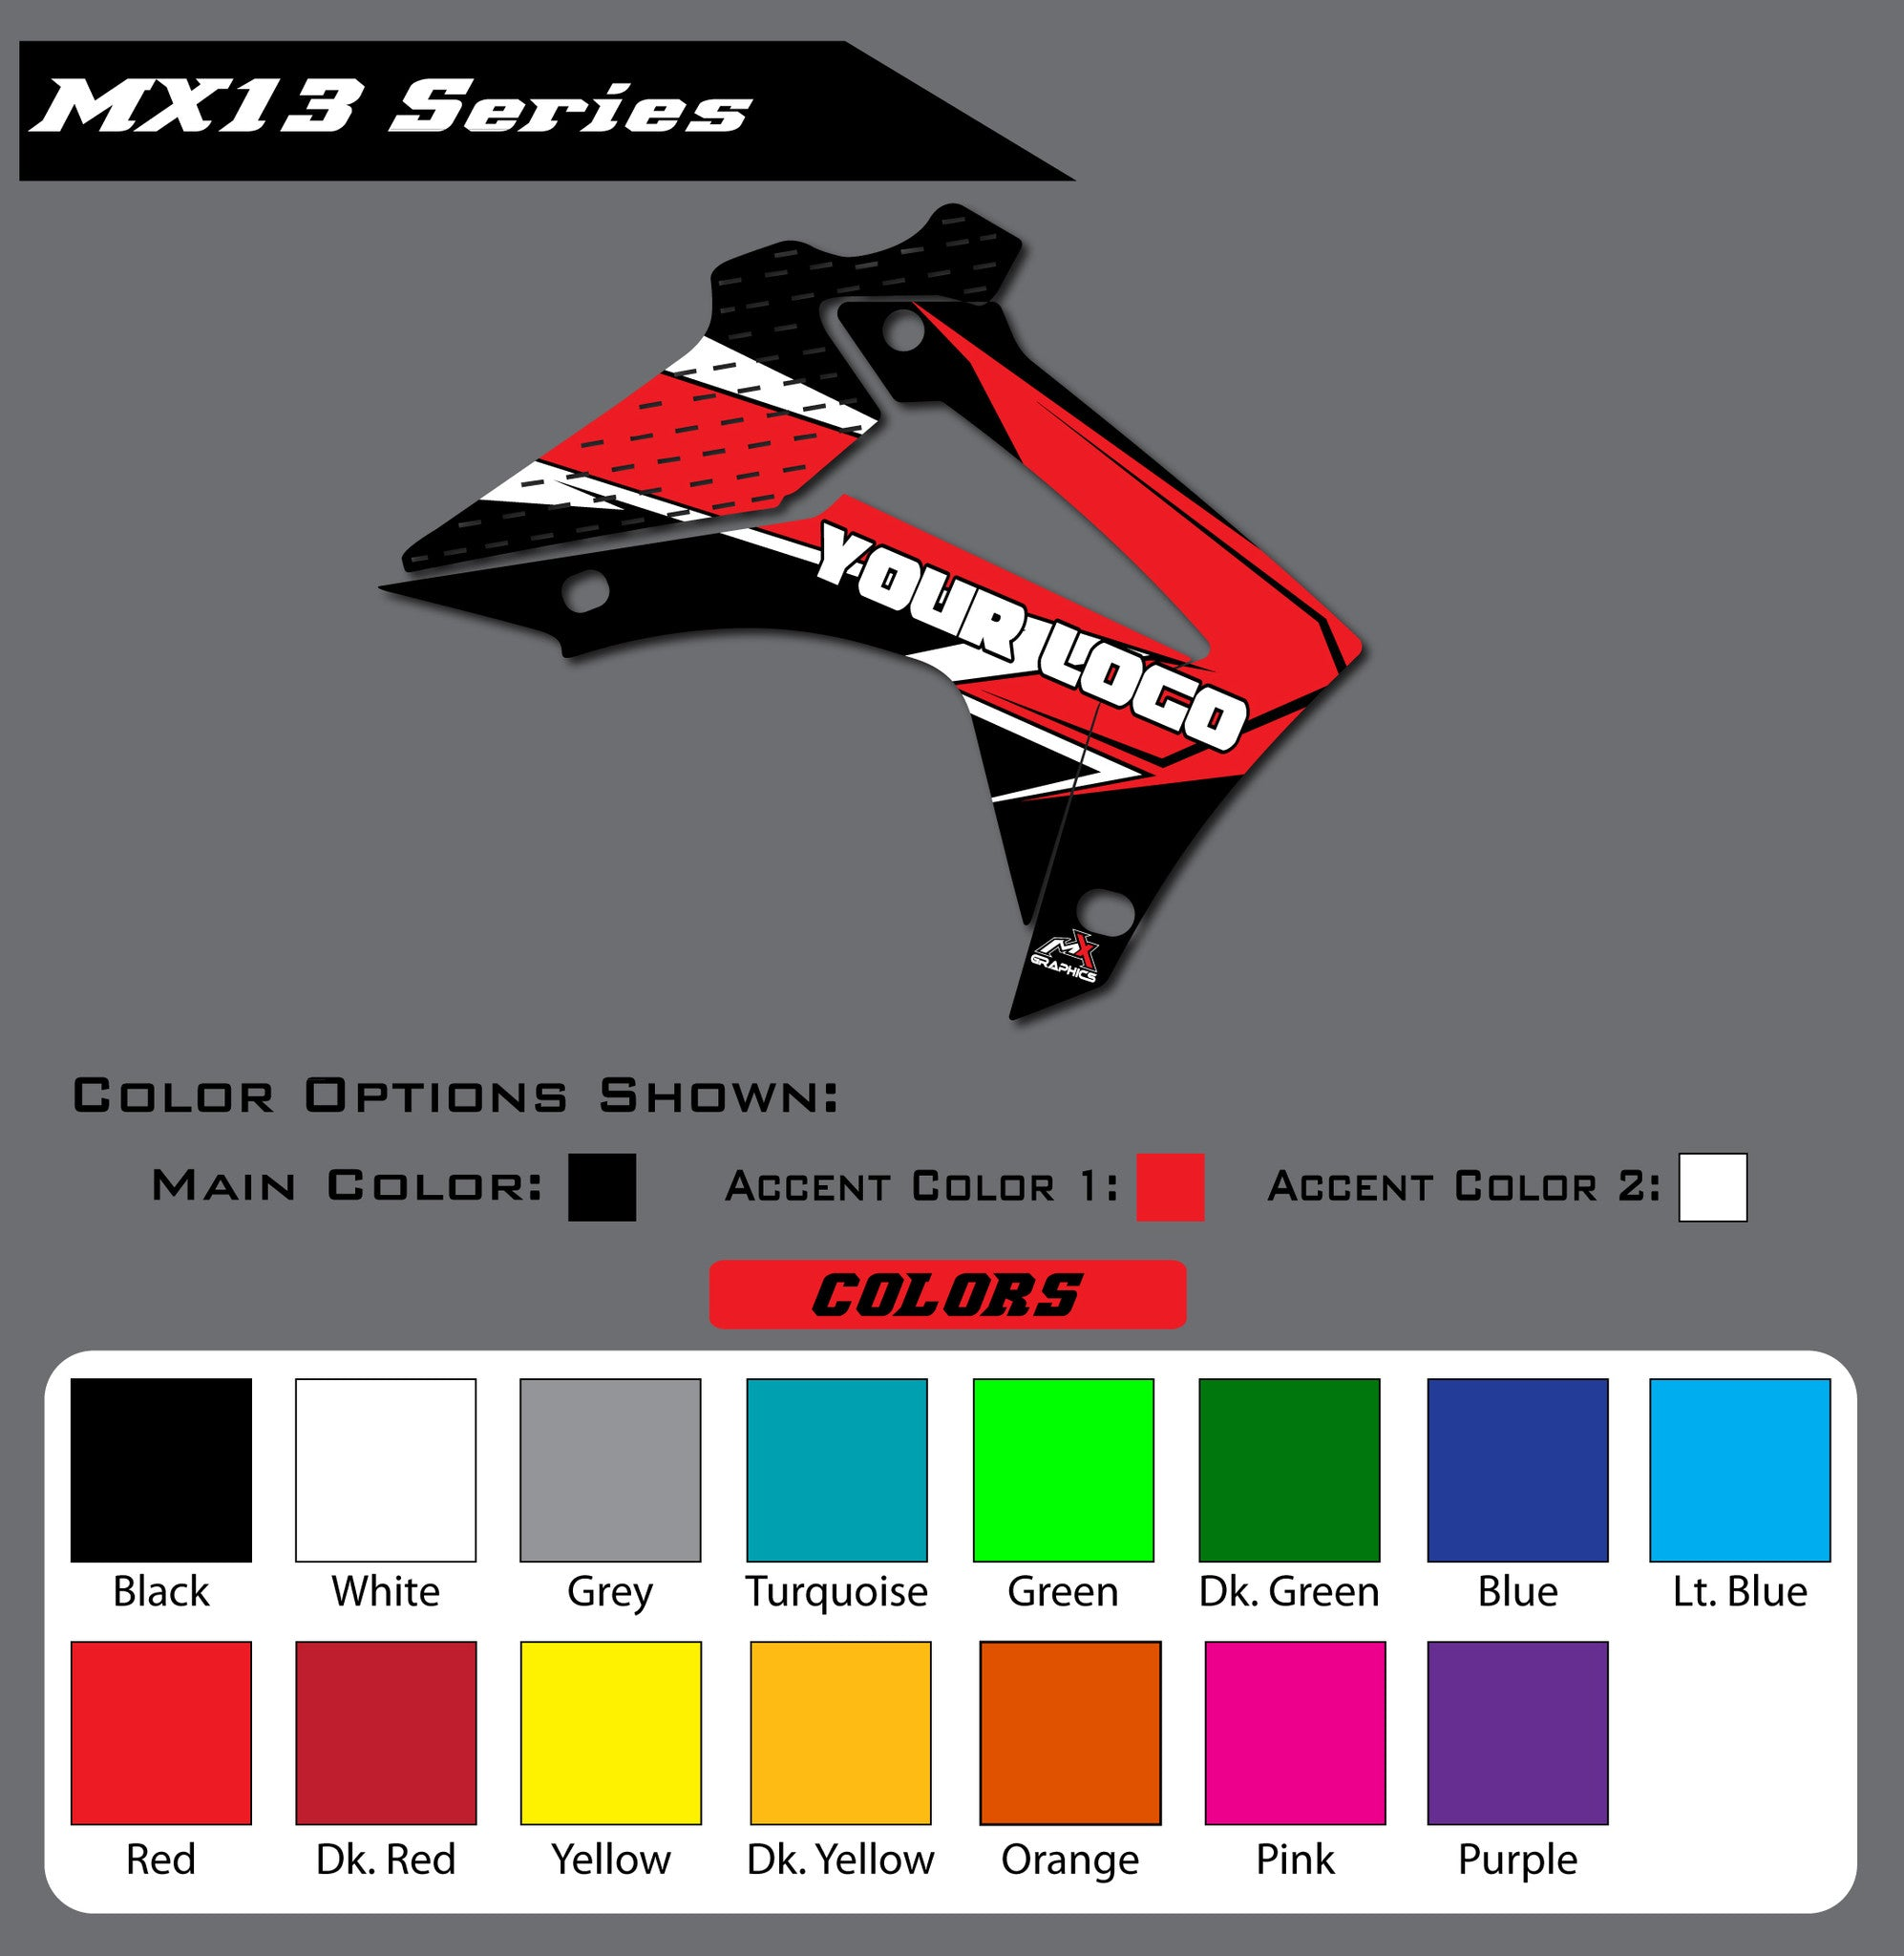 Honda MX13 Shroud Graphics